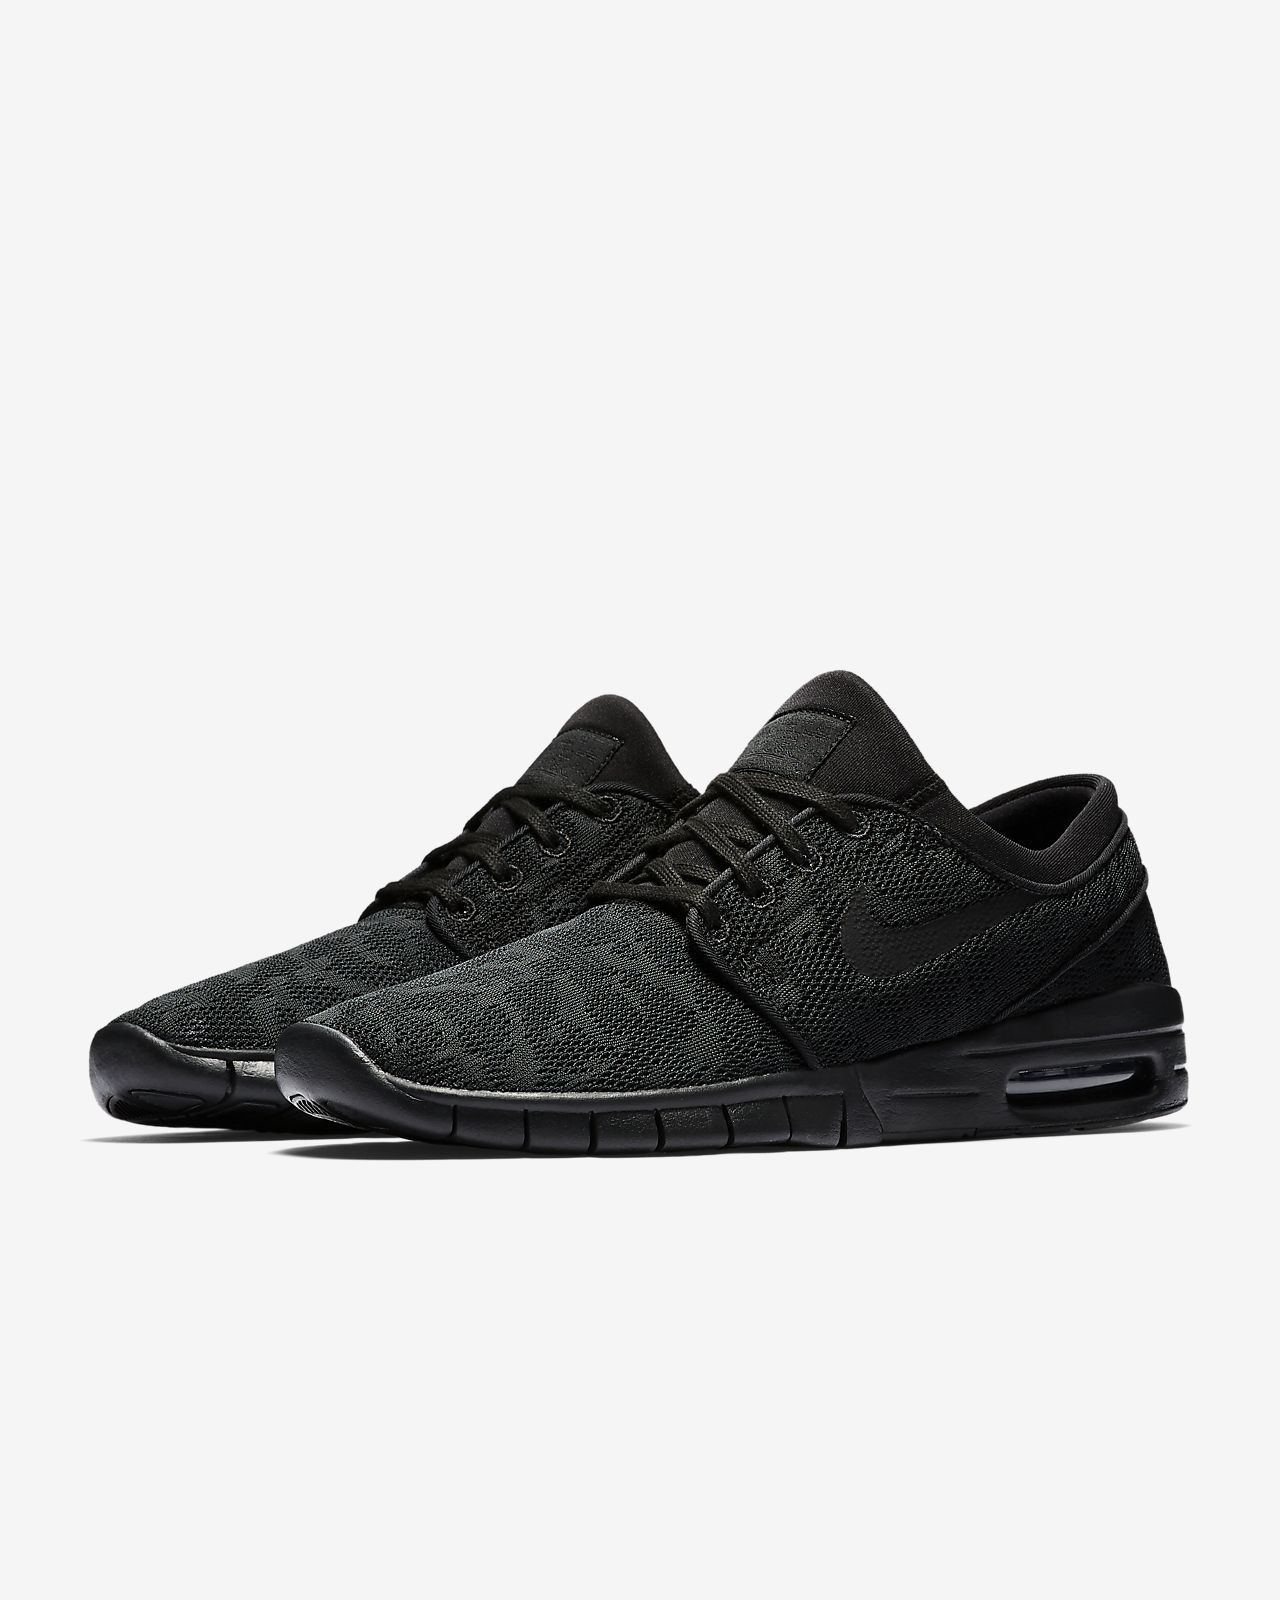 nike air max noir friday sale 2015